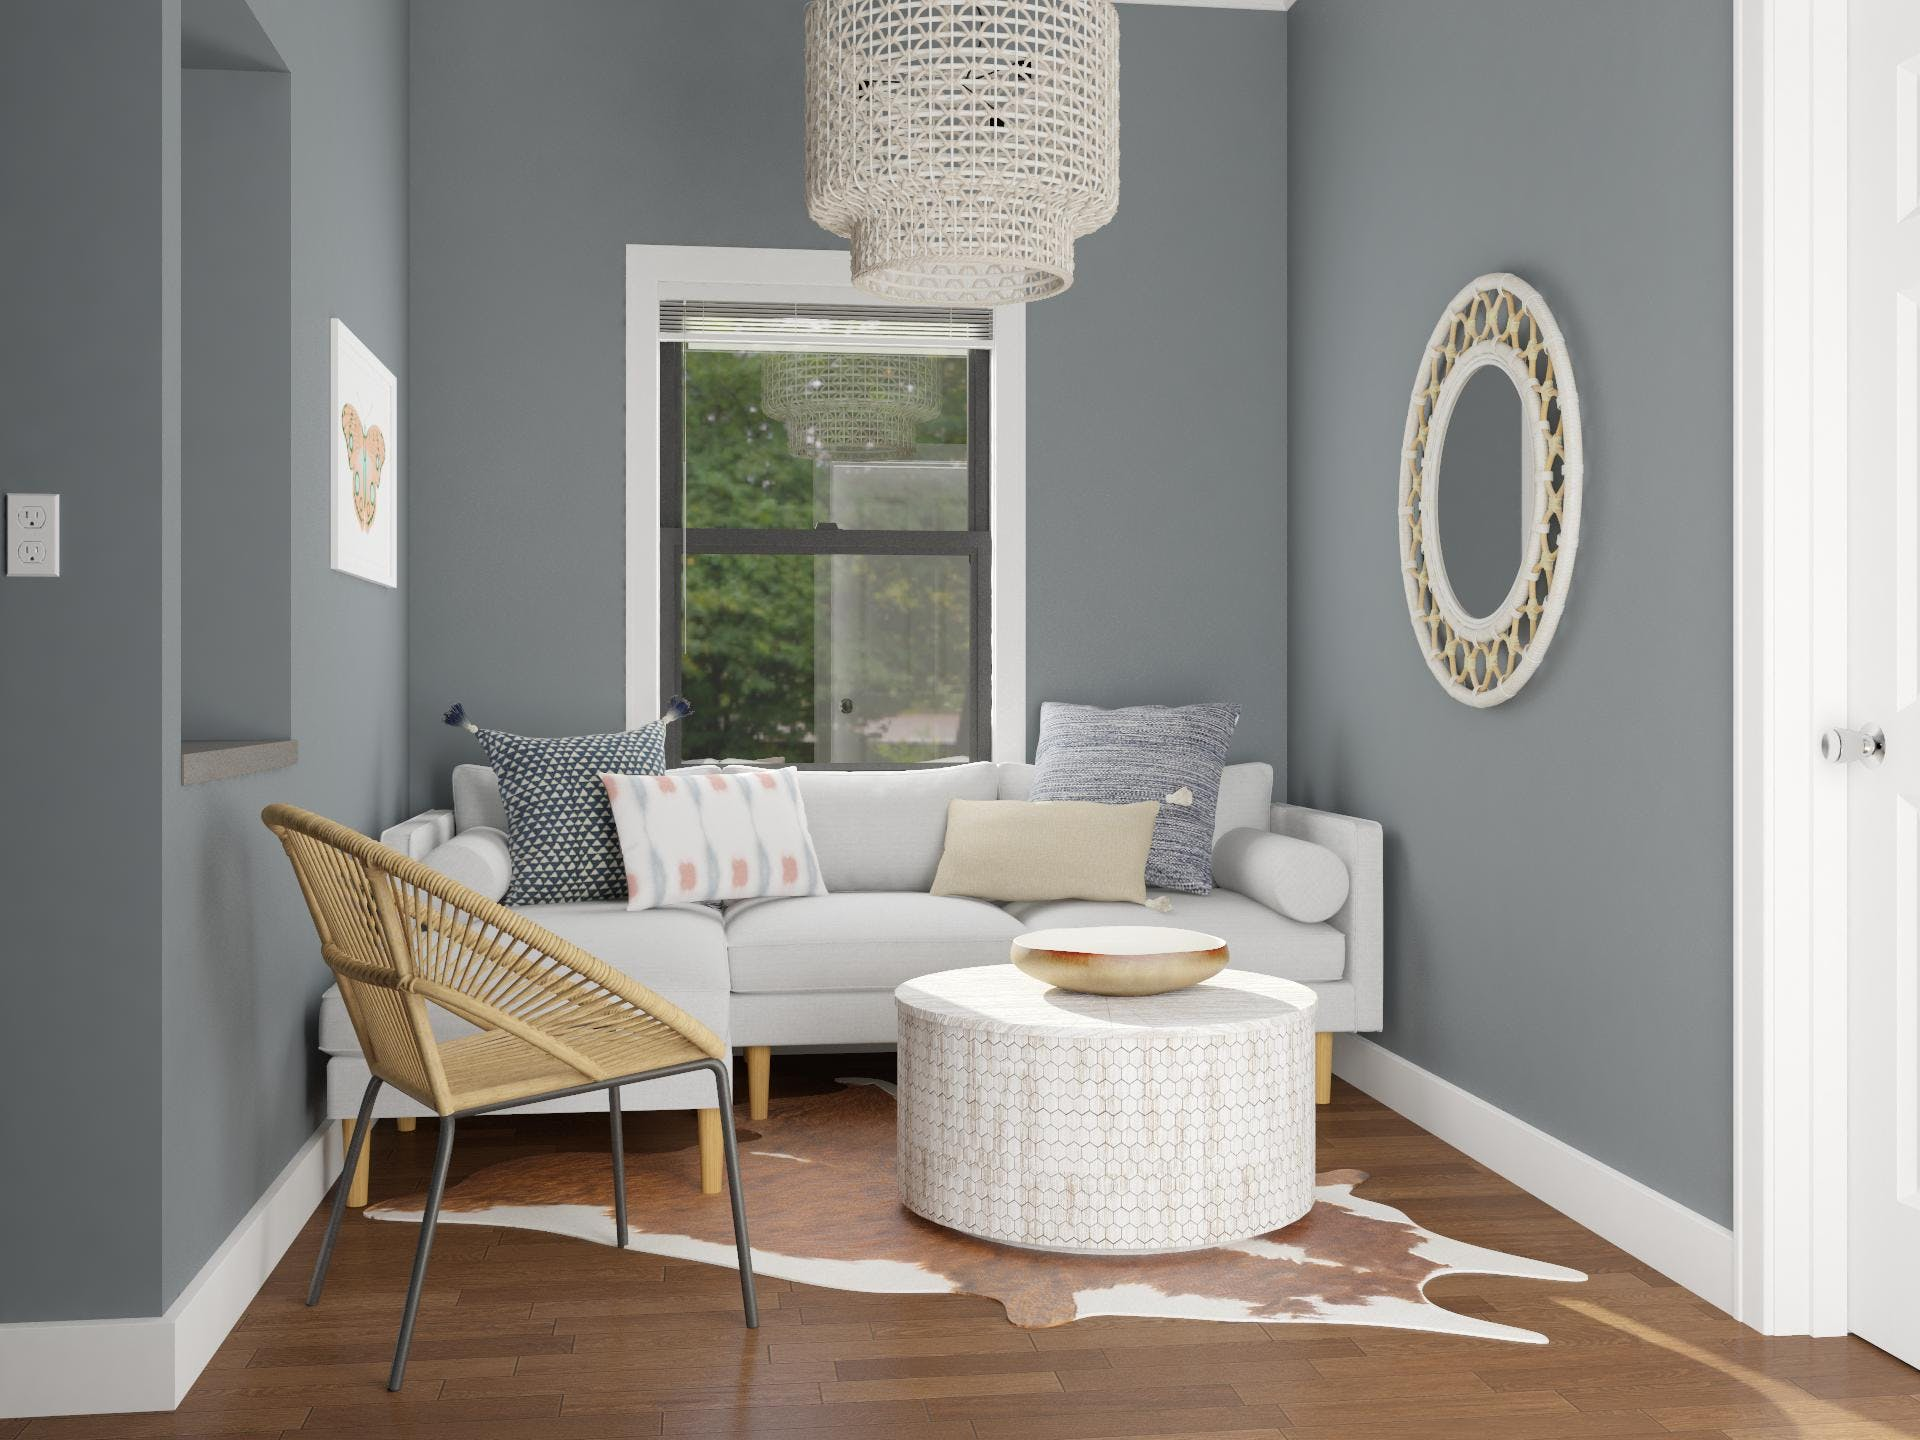 Charcoal Gray Living Room With Lively Eclectic Accents in Earth Tones